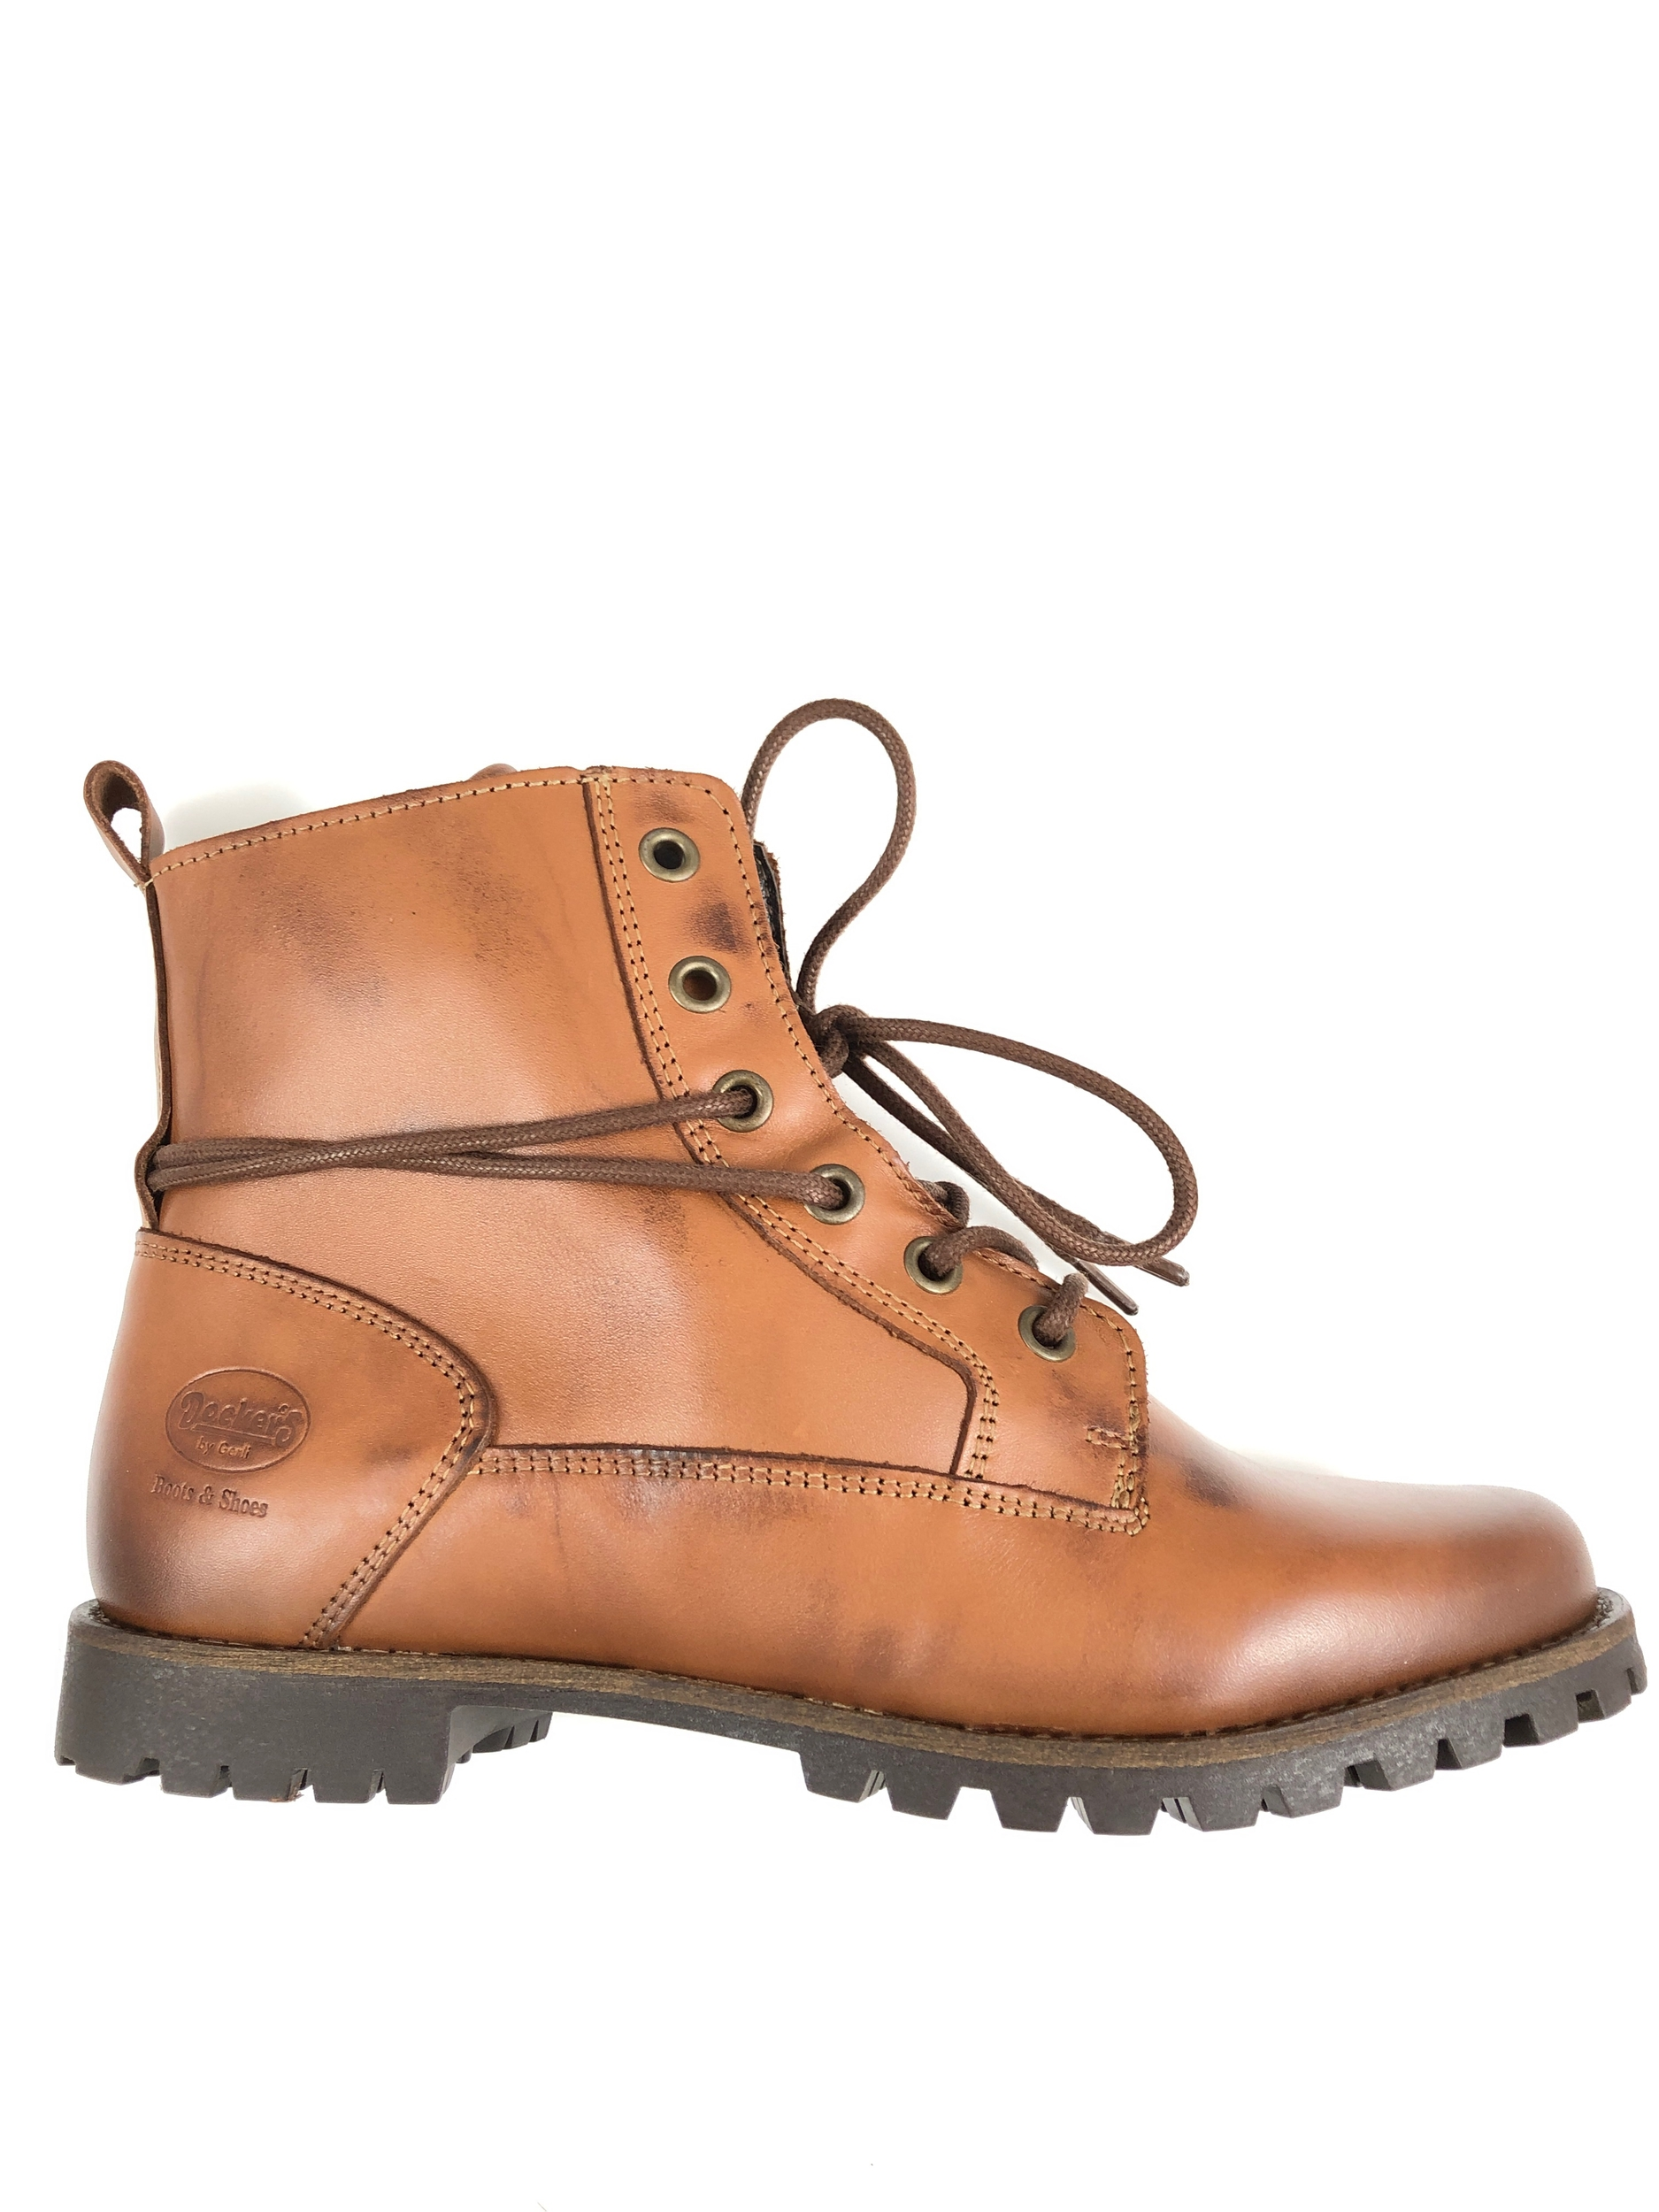 Bottines à lacets cuir cognac Dockers